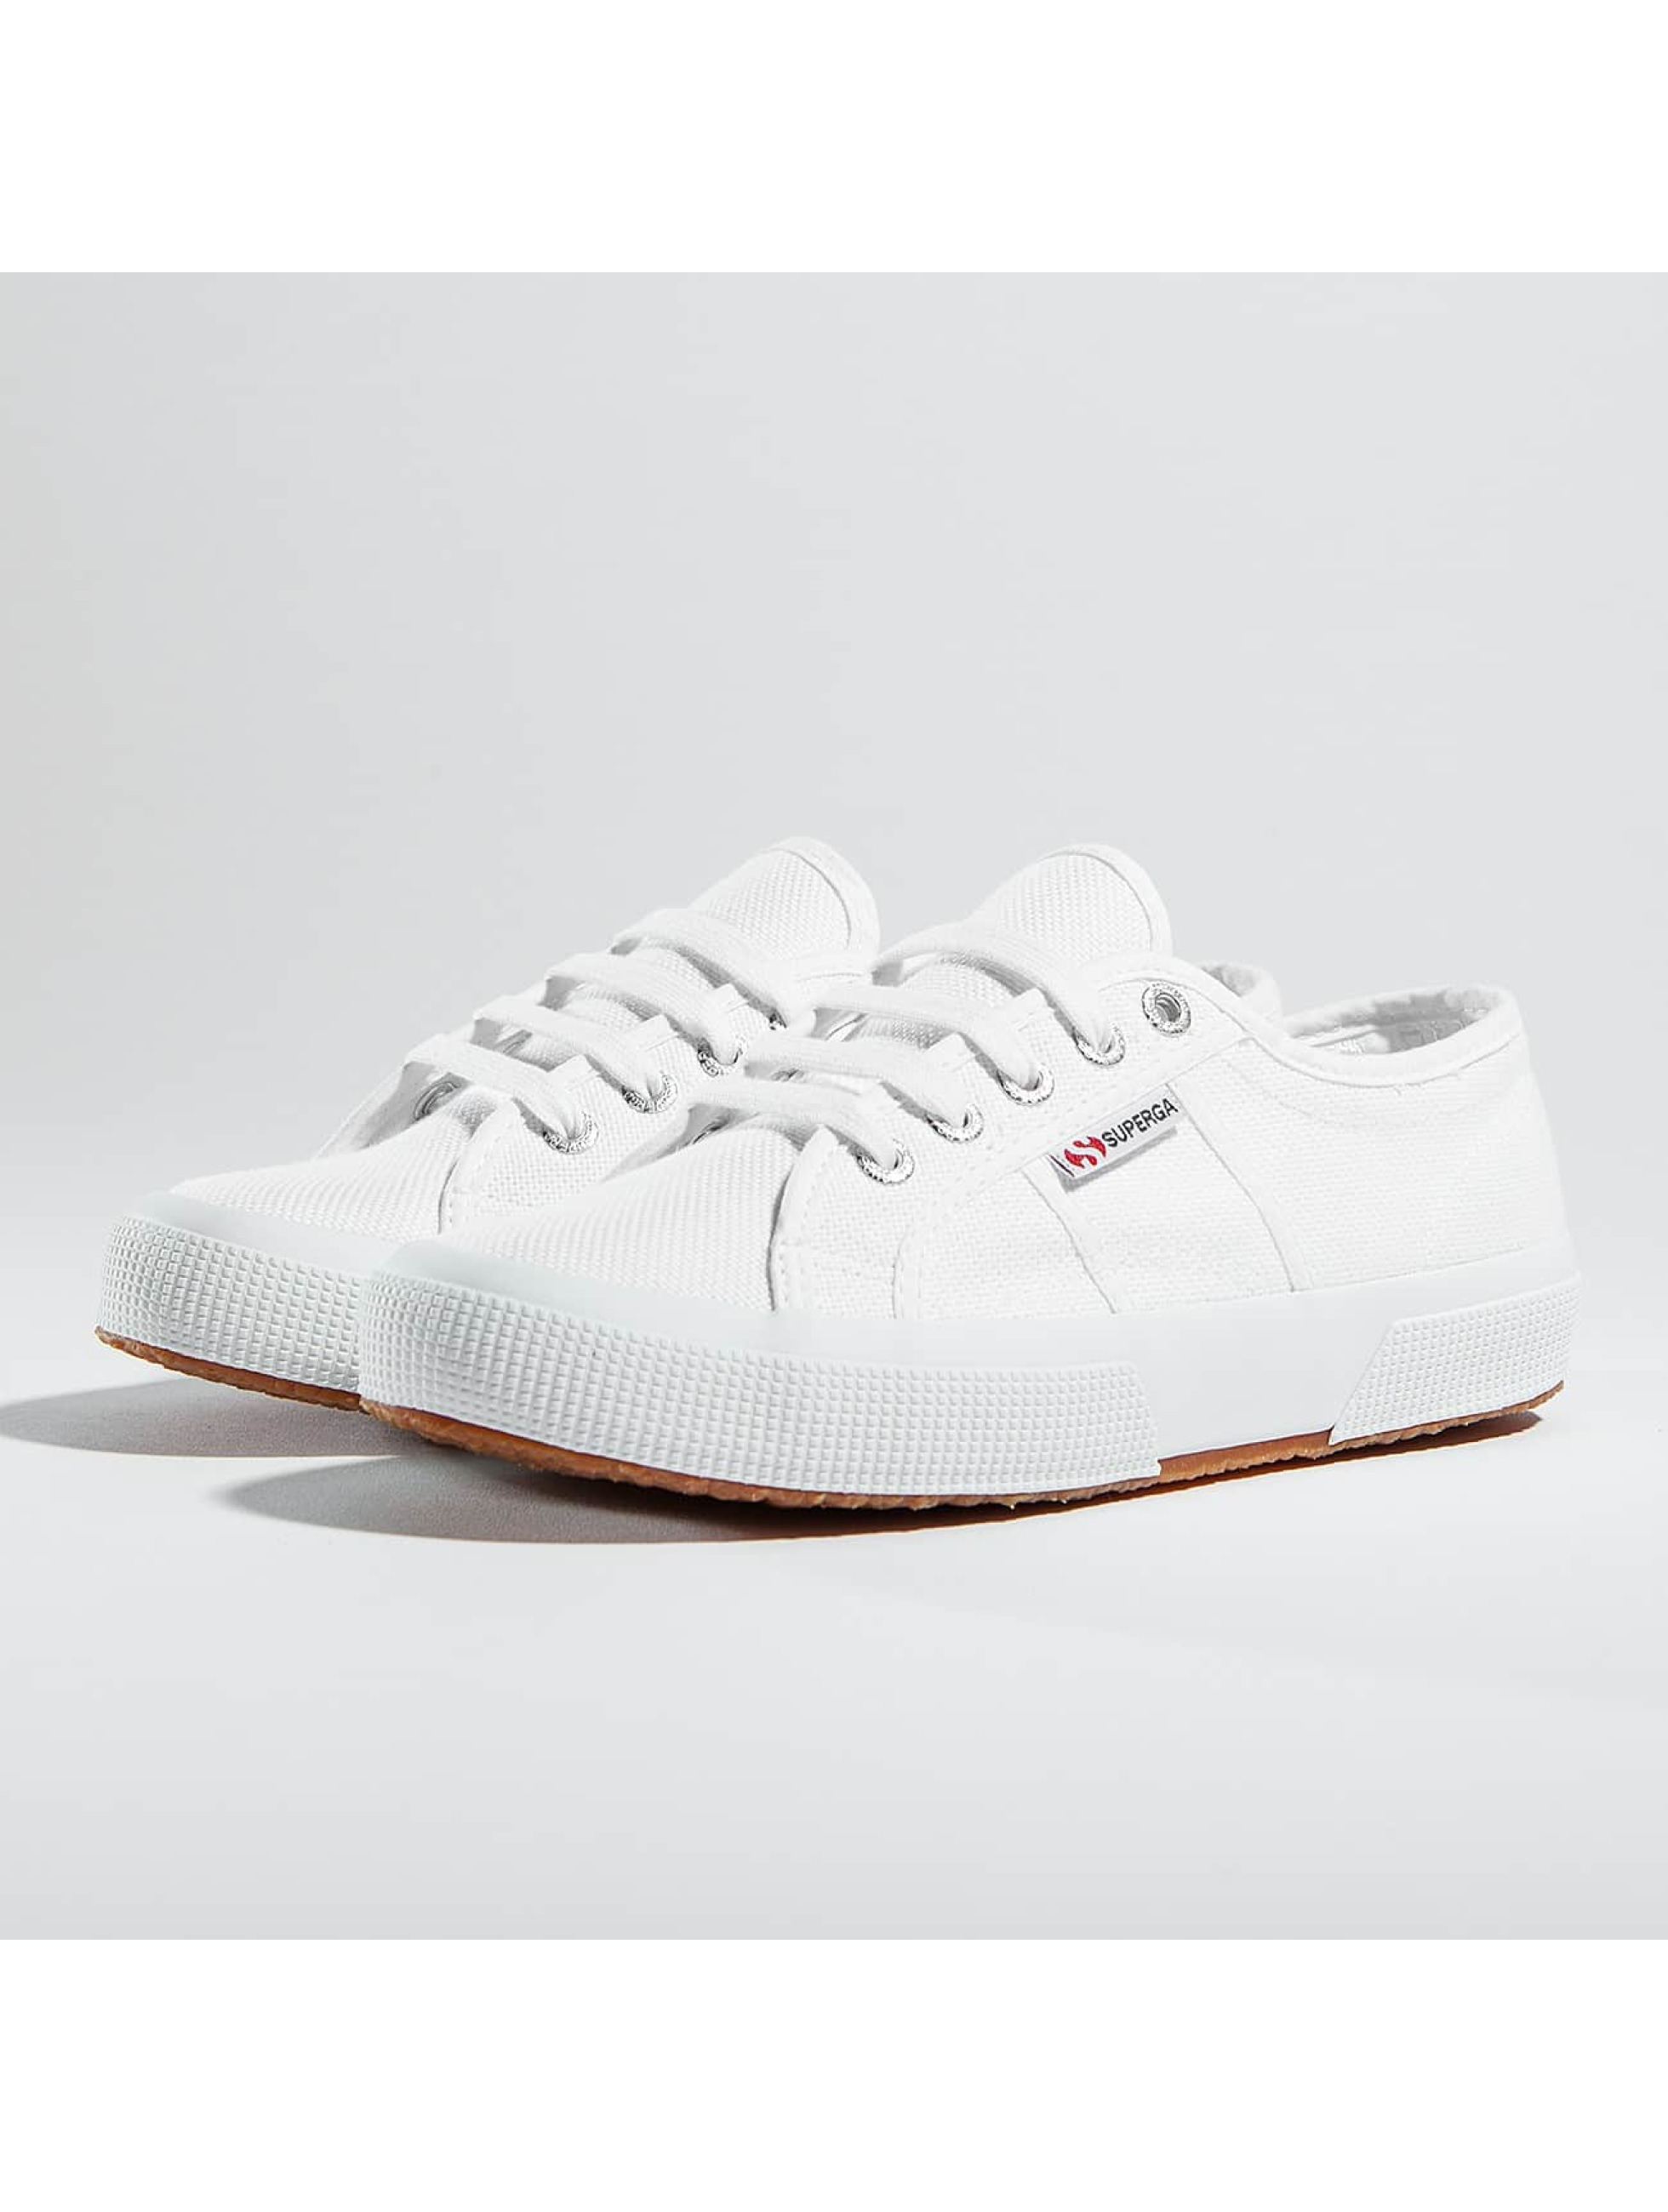 Superga Chaussures / Baskets 2750 Cotu en blanc